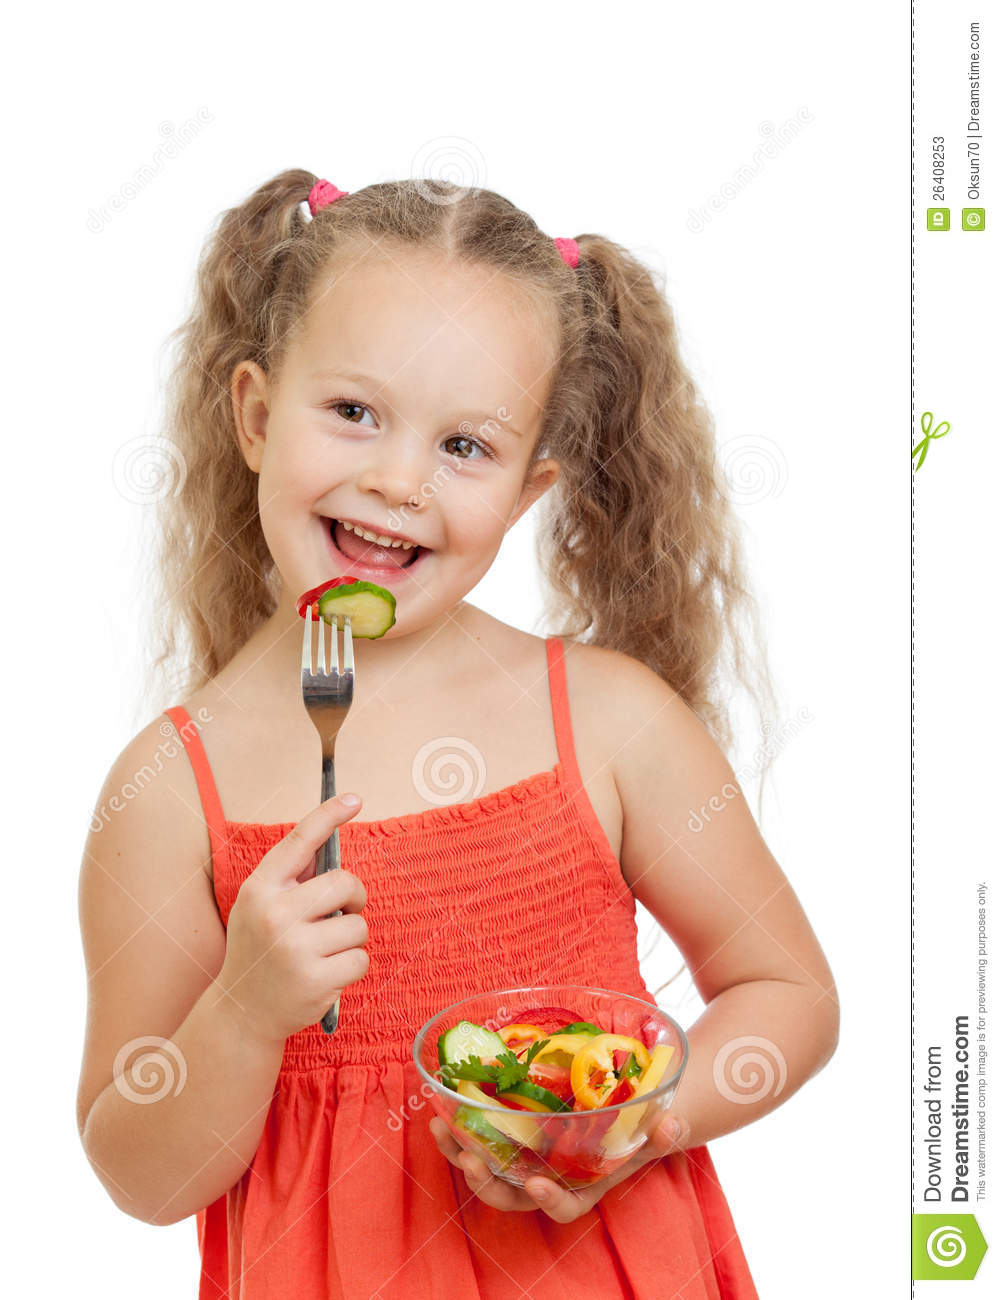 Child Girl Eating With Healthy Food Vegetables Stock